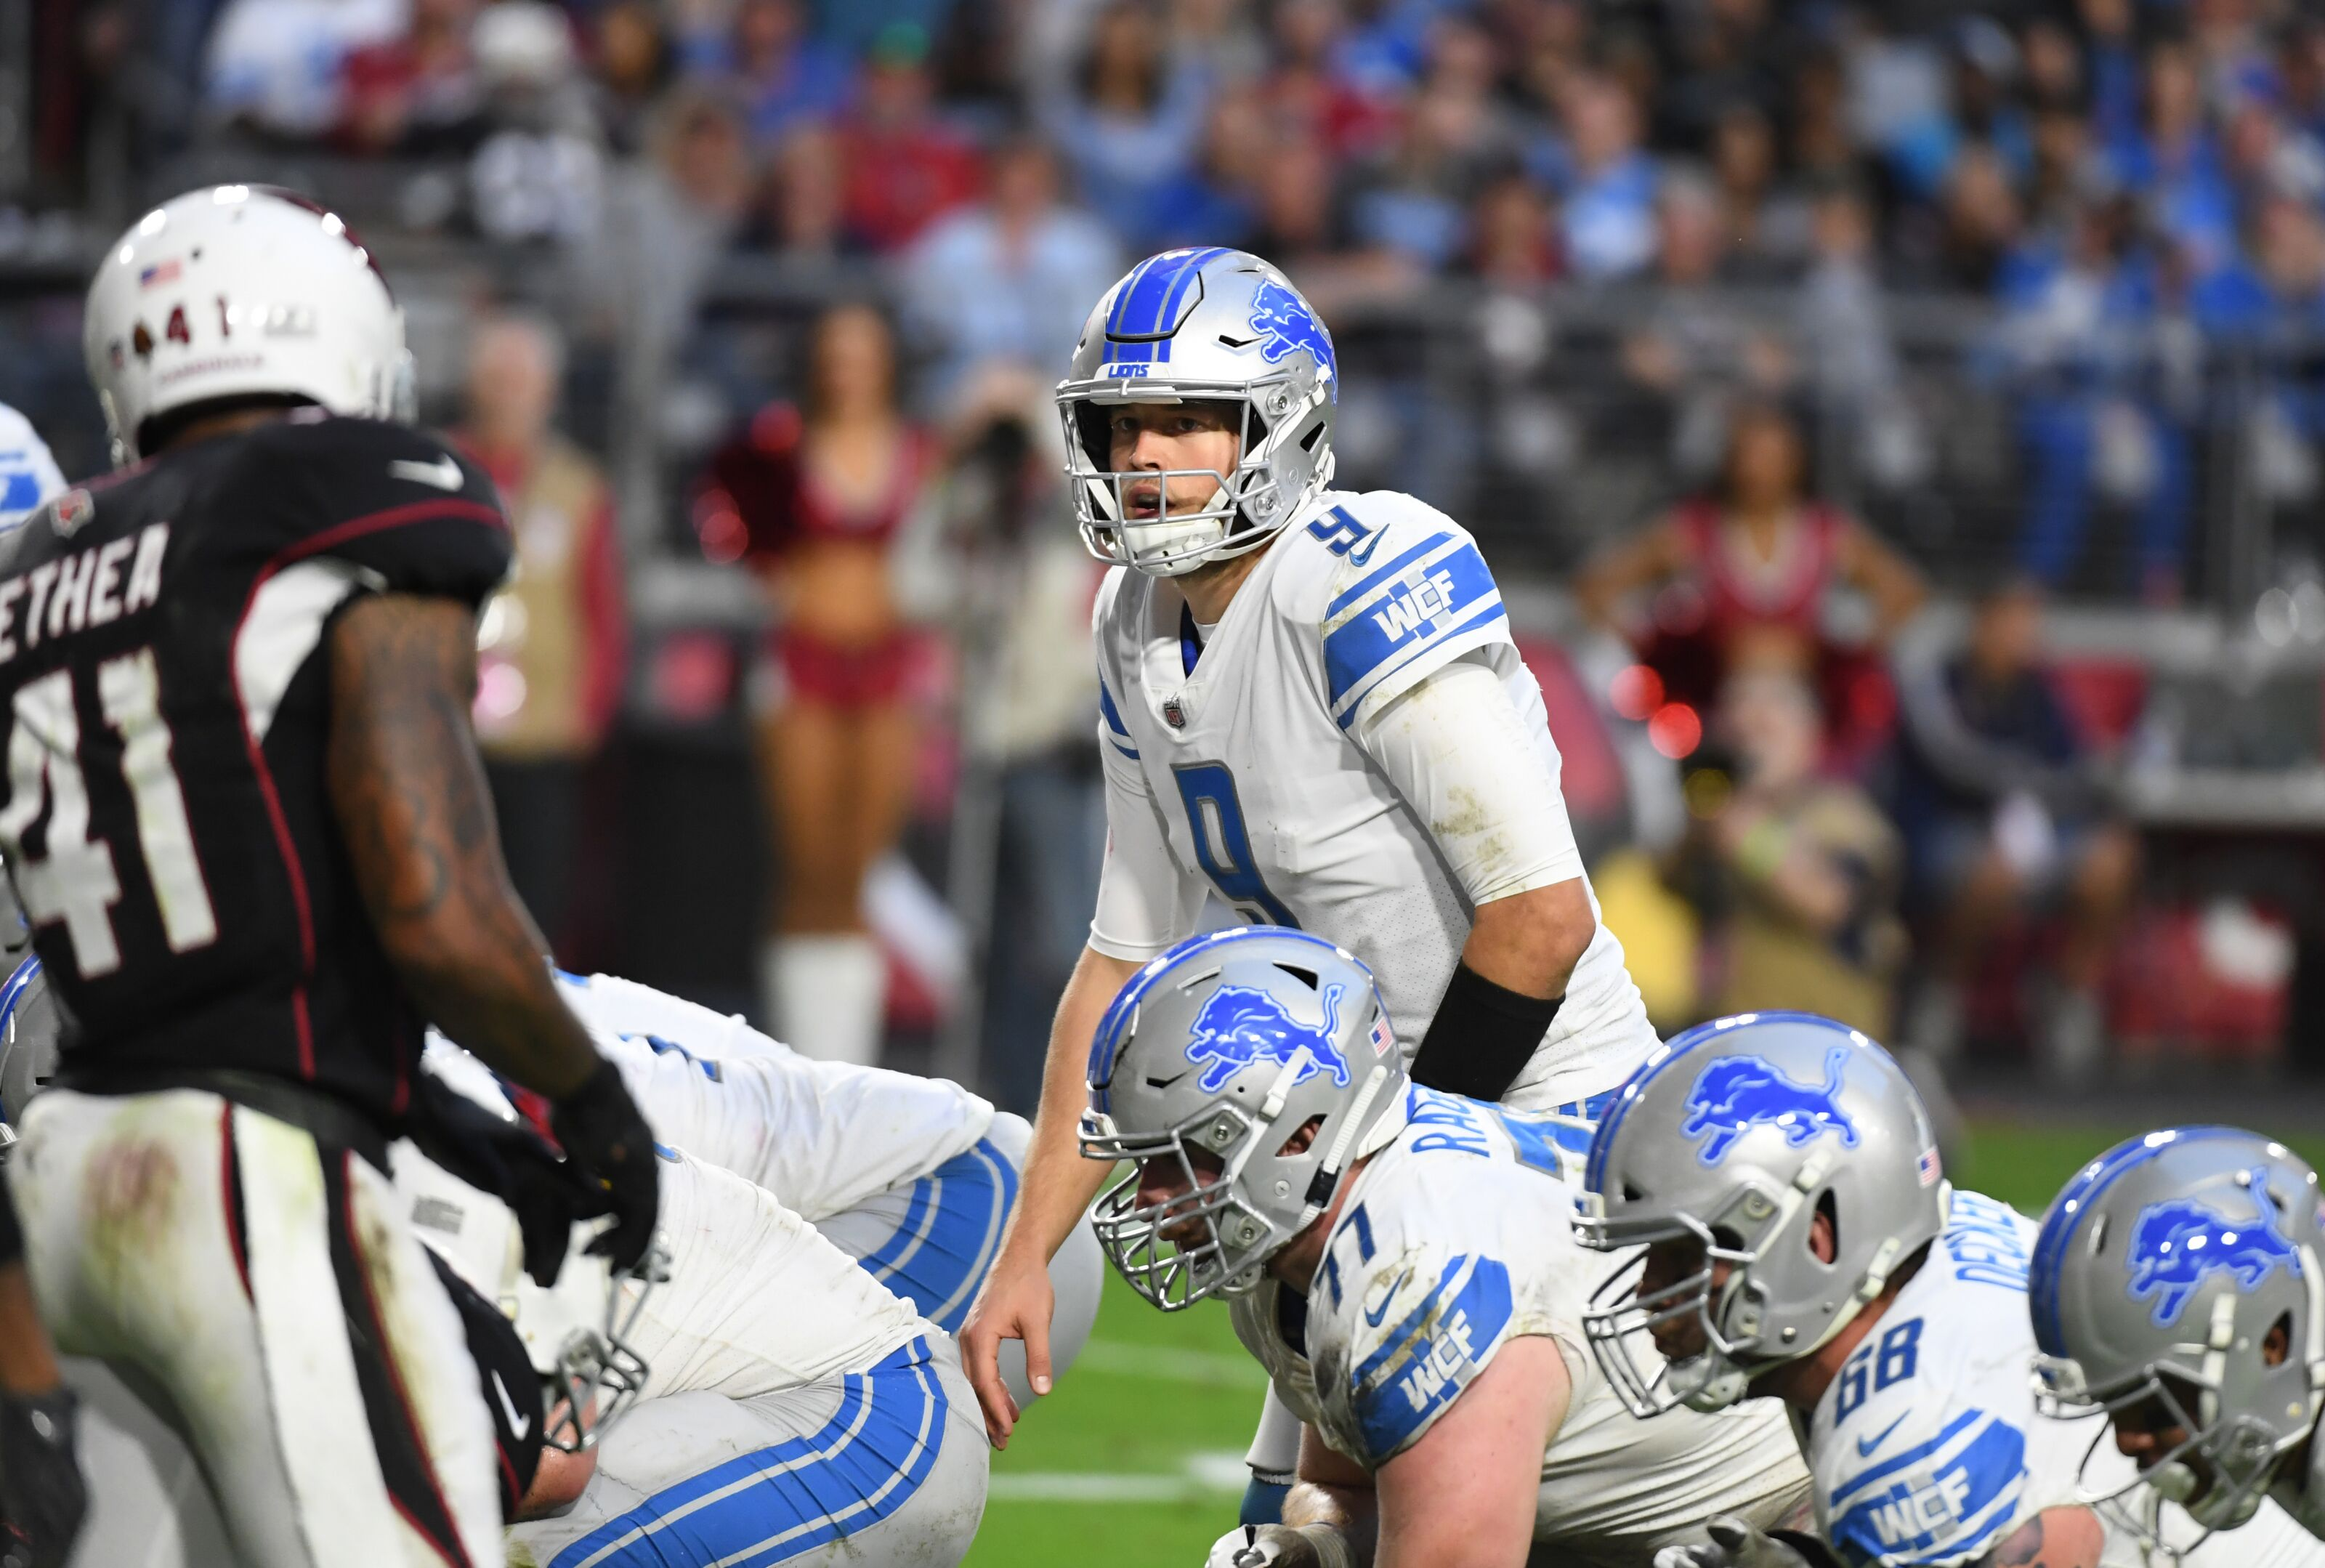 Detroit Lions offense reloaded and ready to compete in 2019